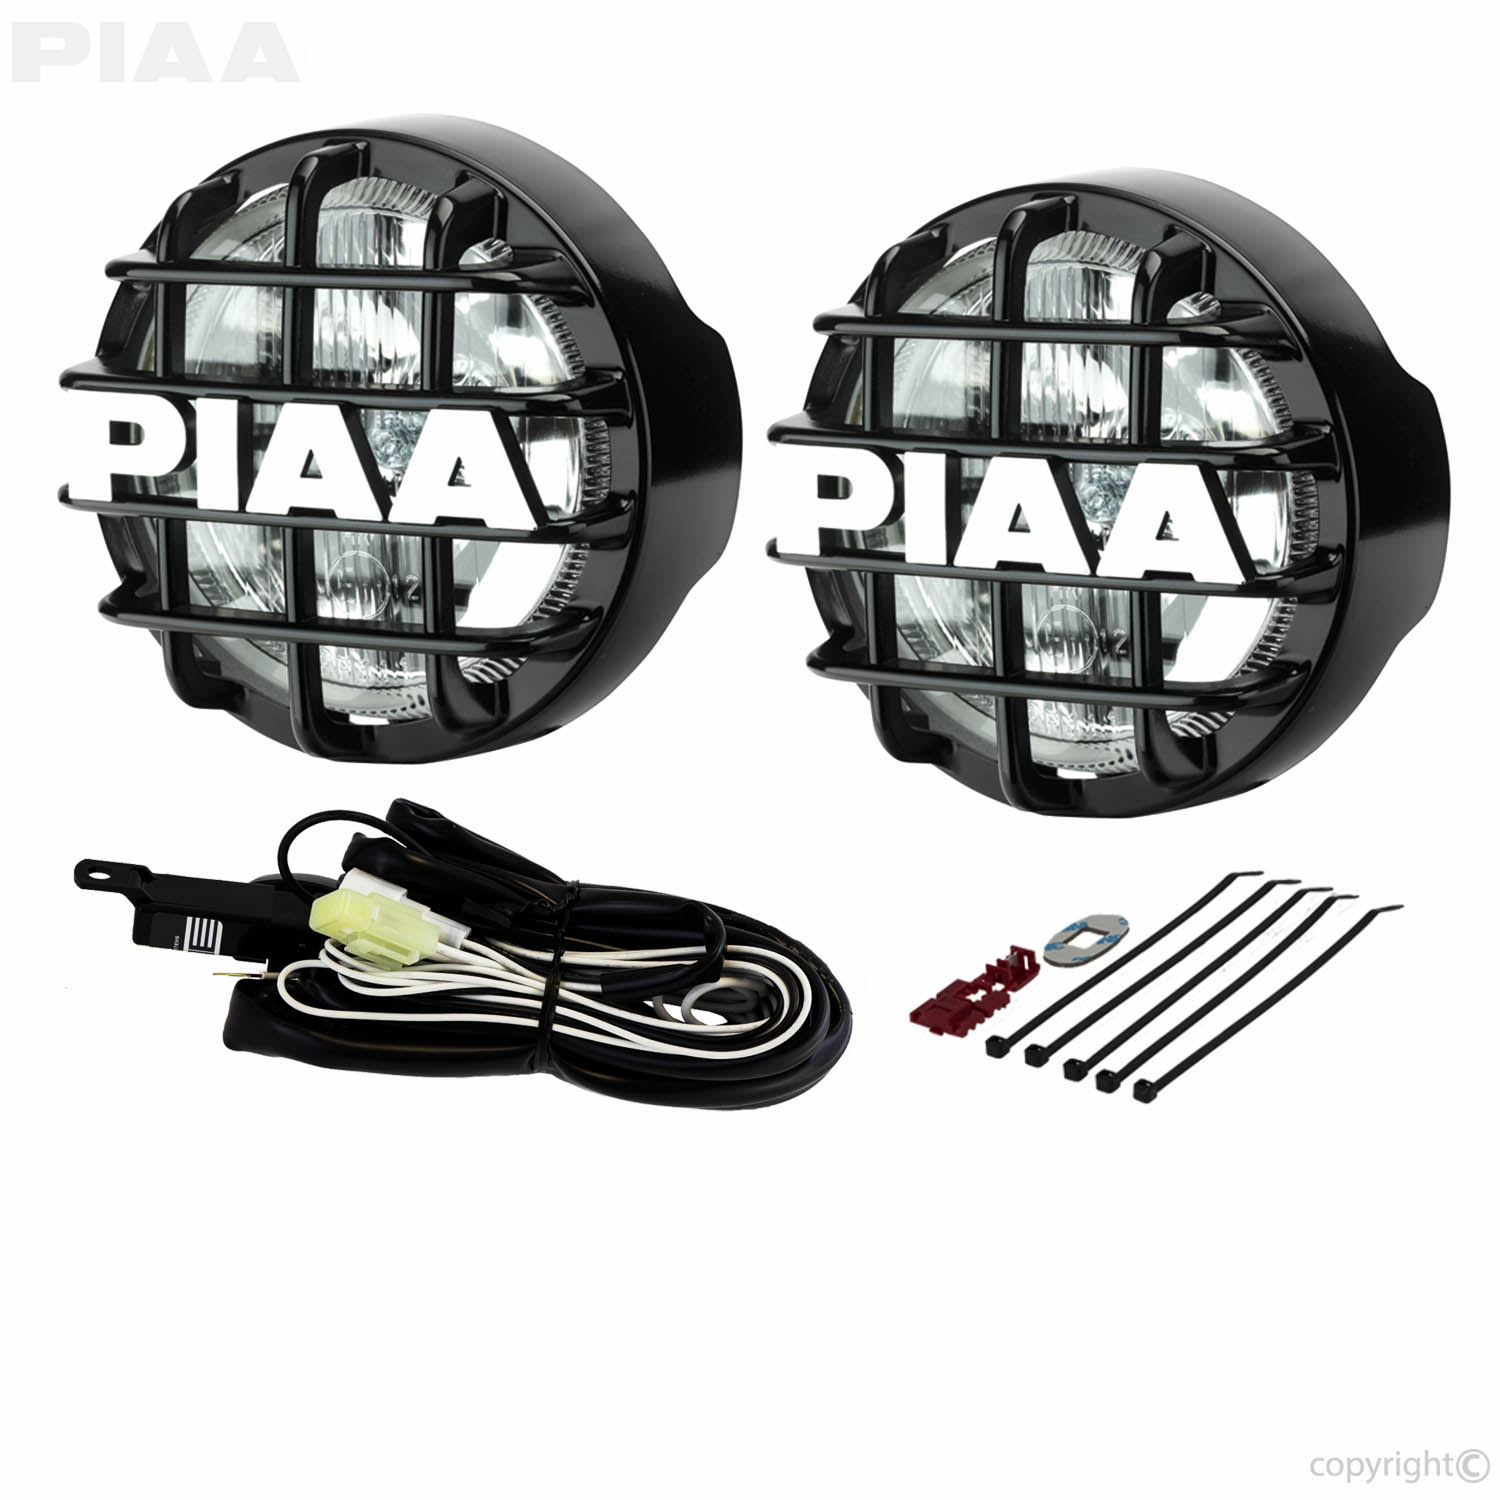 Piaa Motorcycle Lights Wiring Diagram Schematic Diagrams Fog Light 580 Services U2022 2006 Jeep Liberty Tail